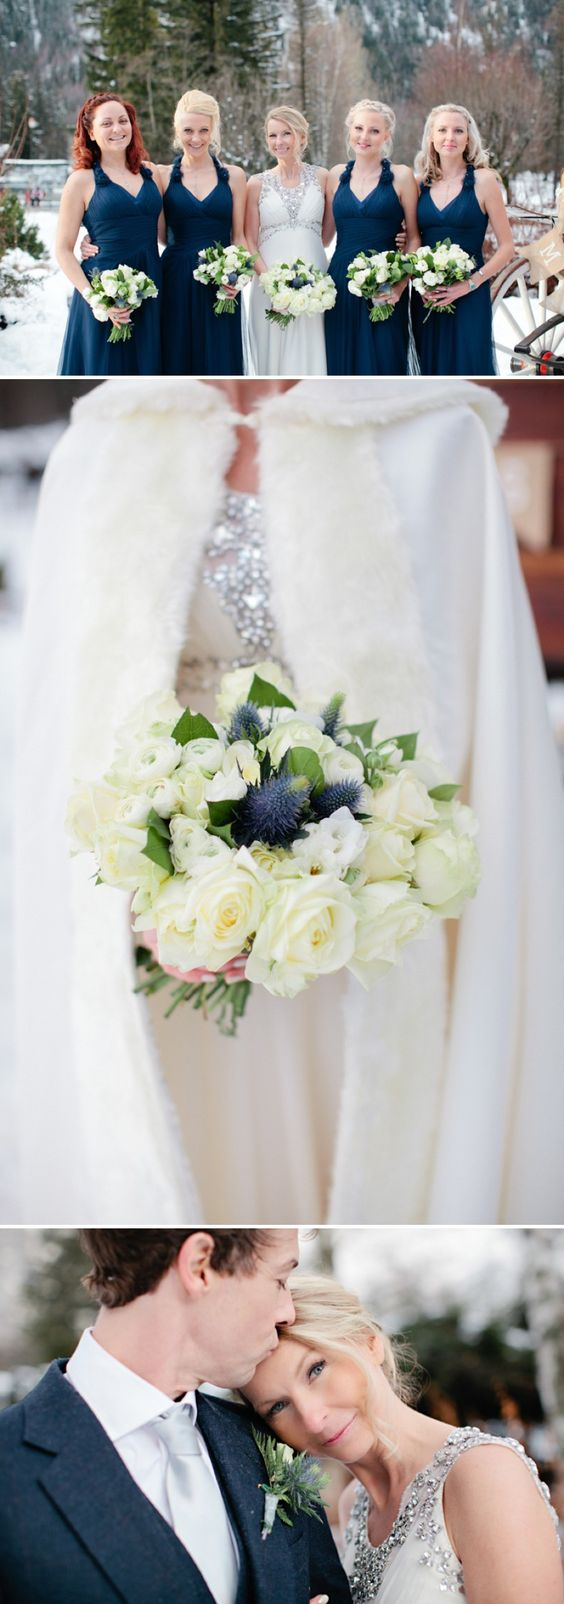 A Snowy Winter Wedding With A Jenny Packham Muscari Dress And Navy Bridesmaid Dresses And A White Rose Bouquet In Chamonix France Photographed By Helen Cawte. 0008